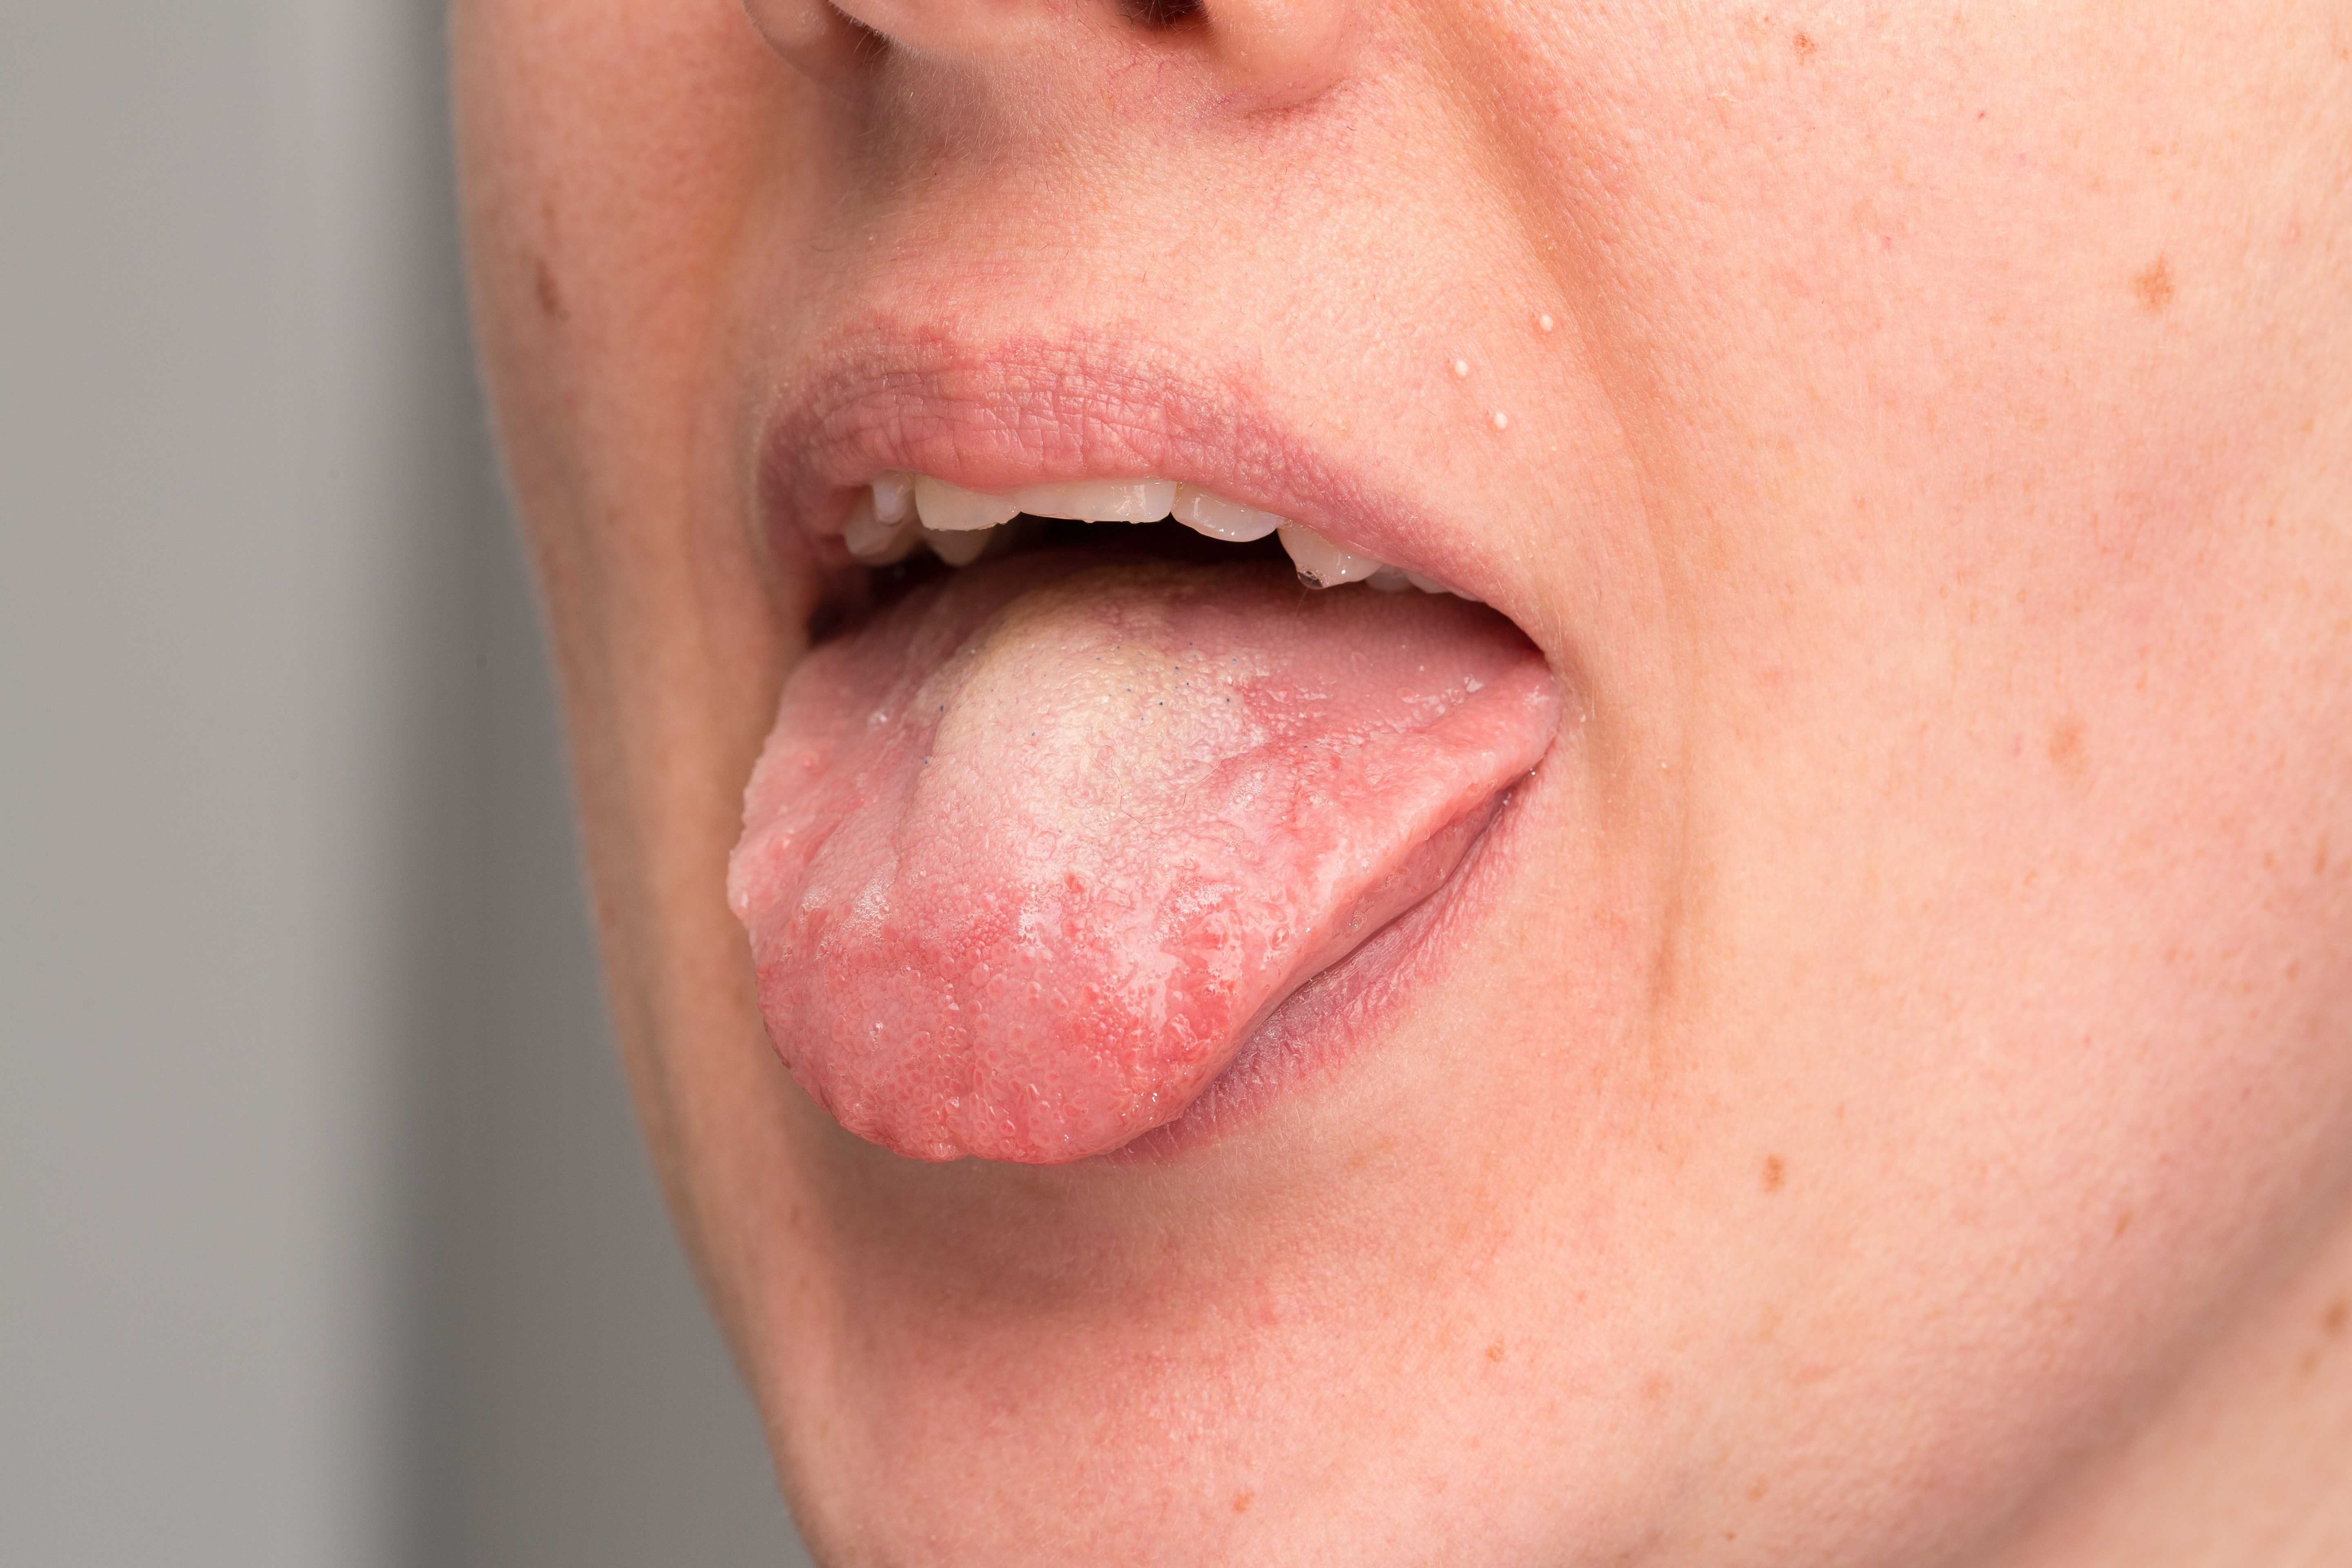 Candid albicans infection on tongue of woman